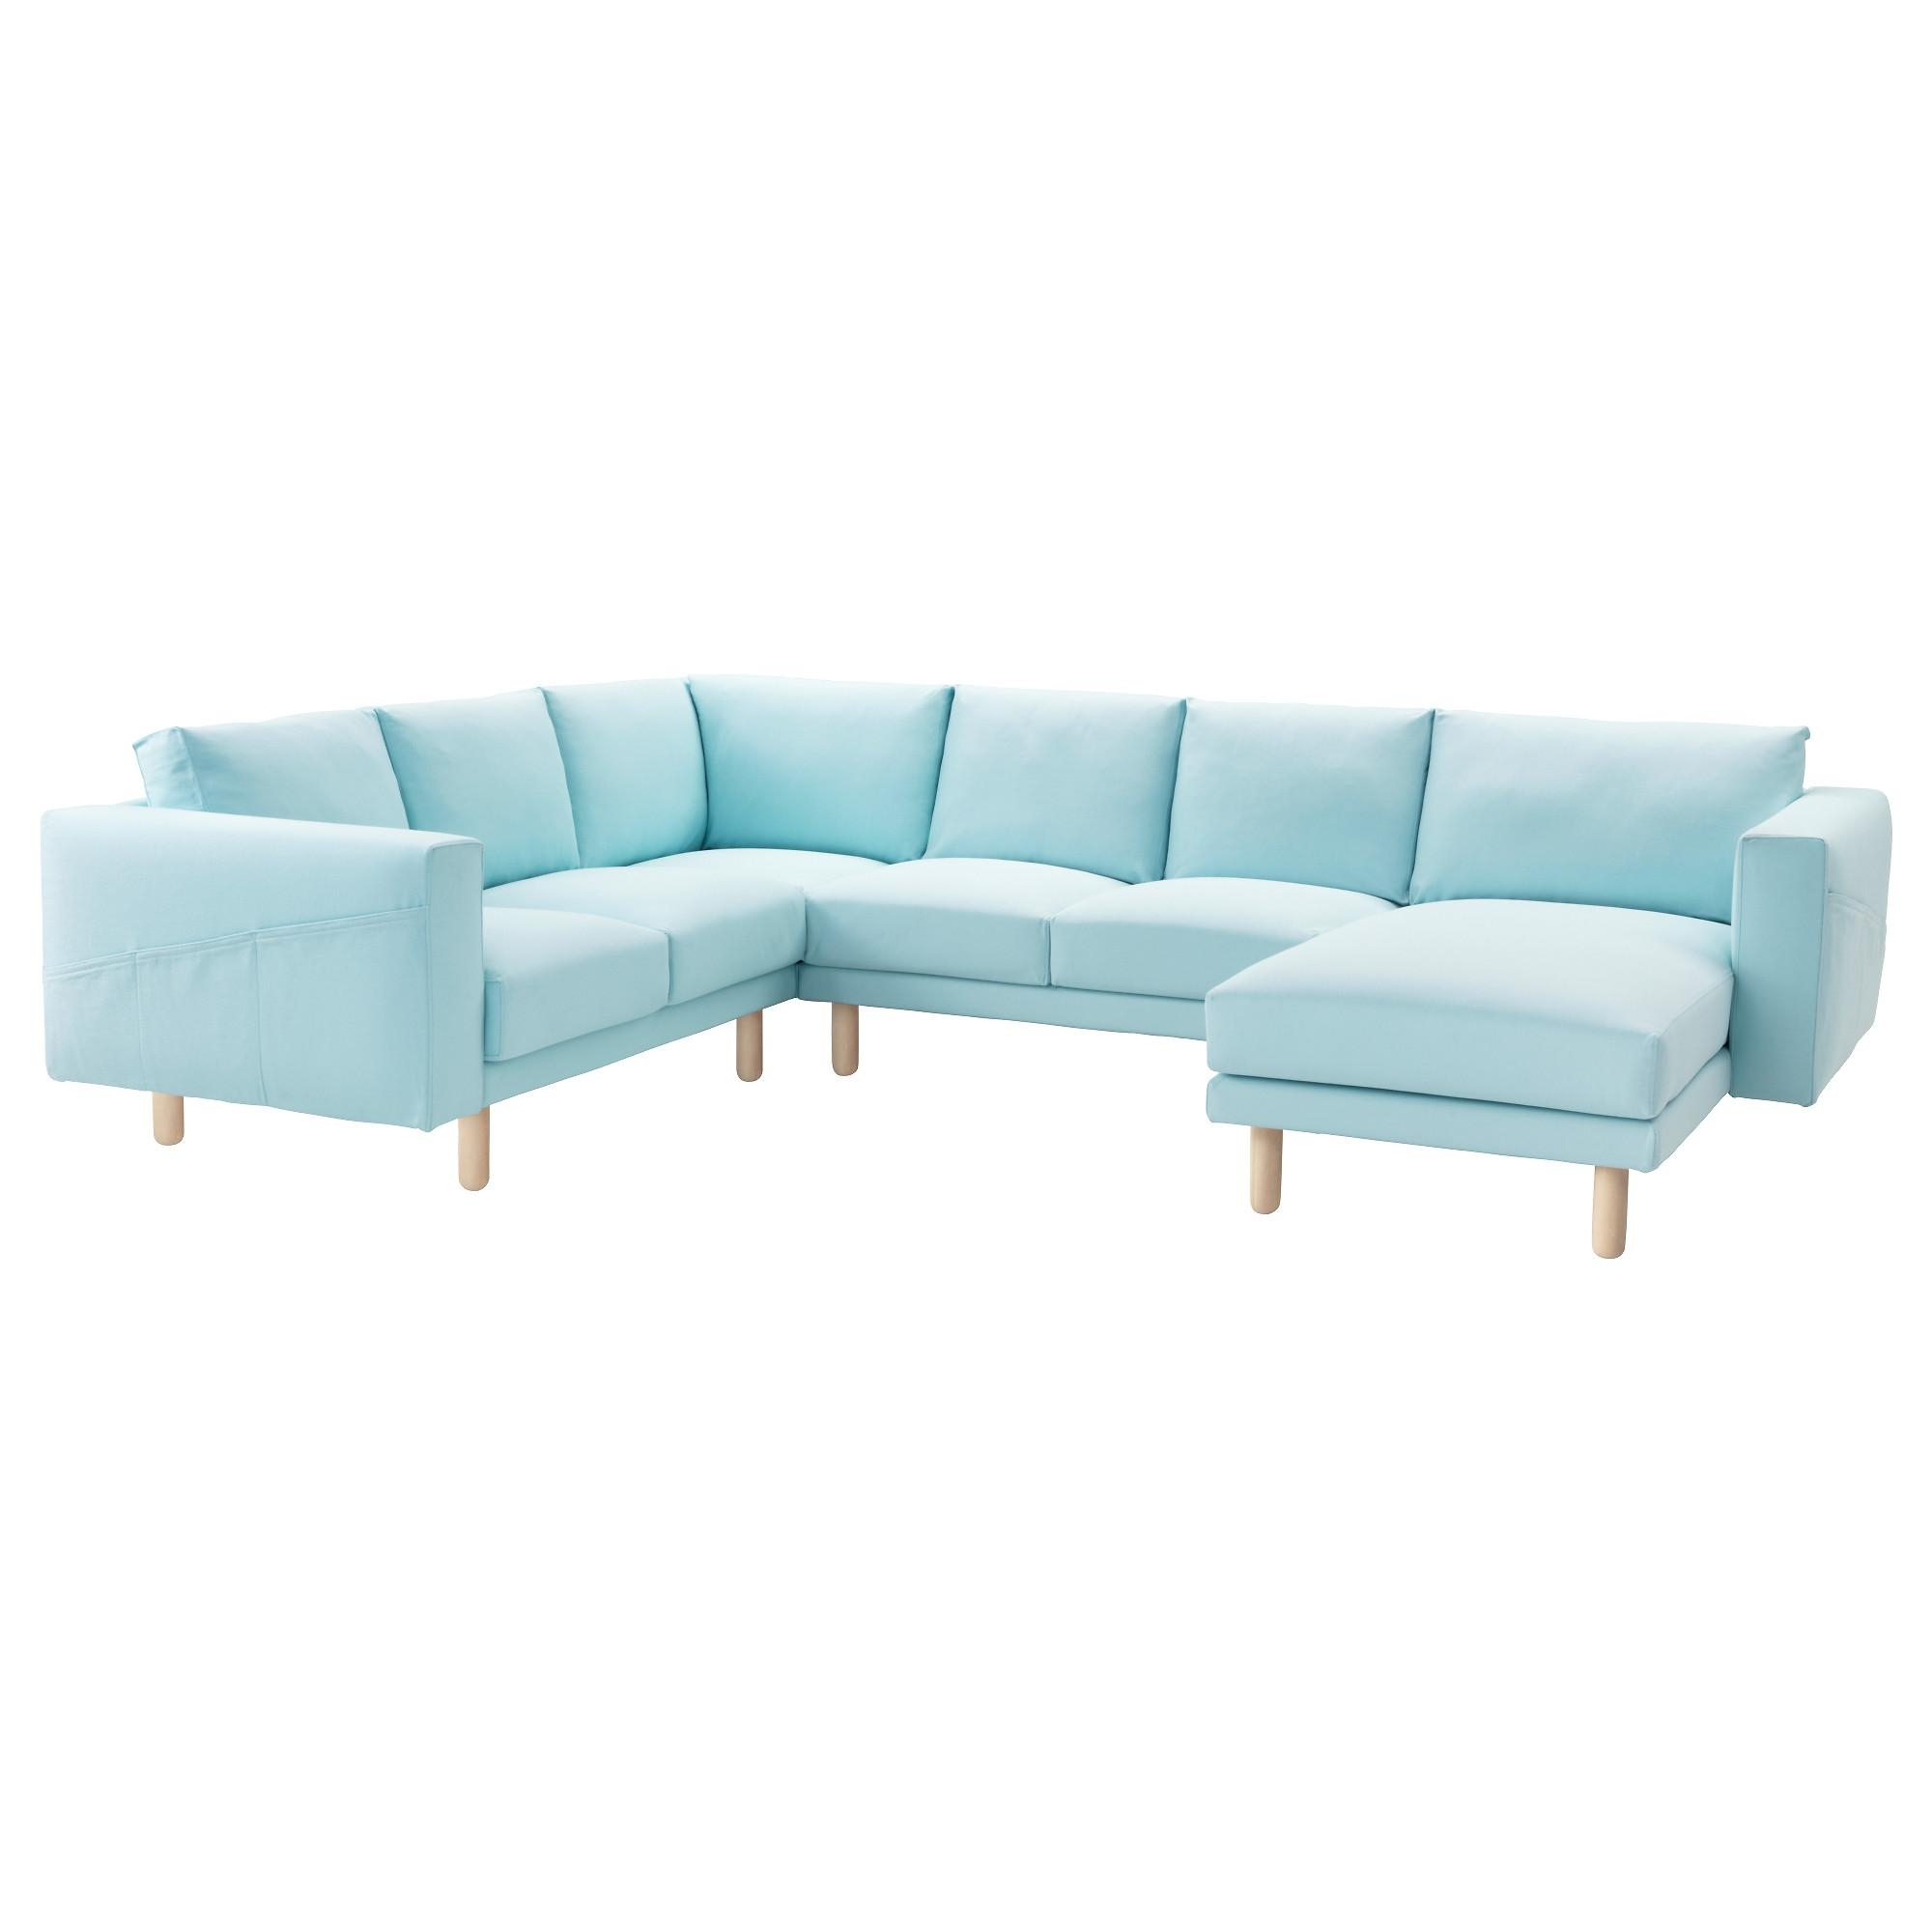 Norsborg Corner Sofa 2+2 With Chaise Longue Gräsbo Light Blue throughout Corner Sofas